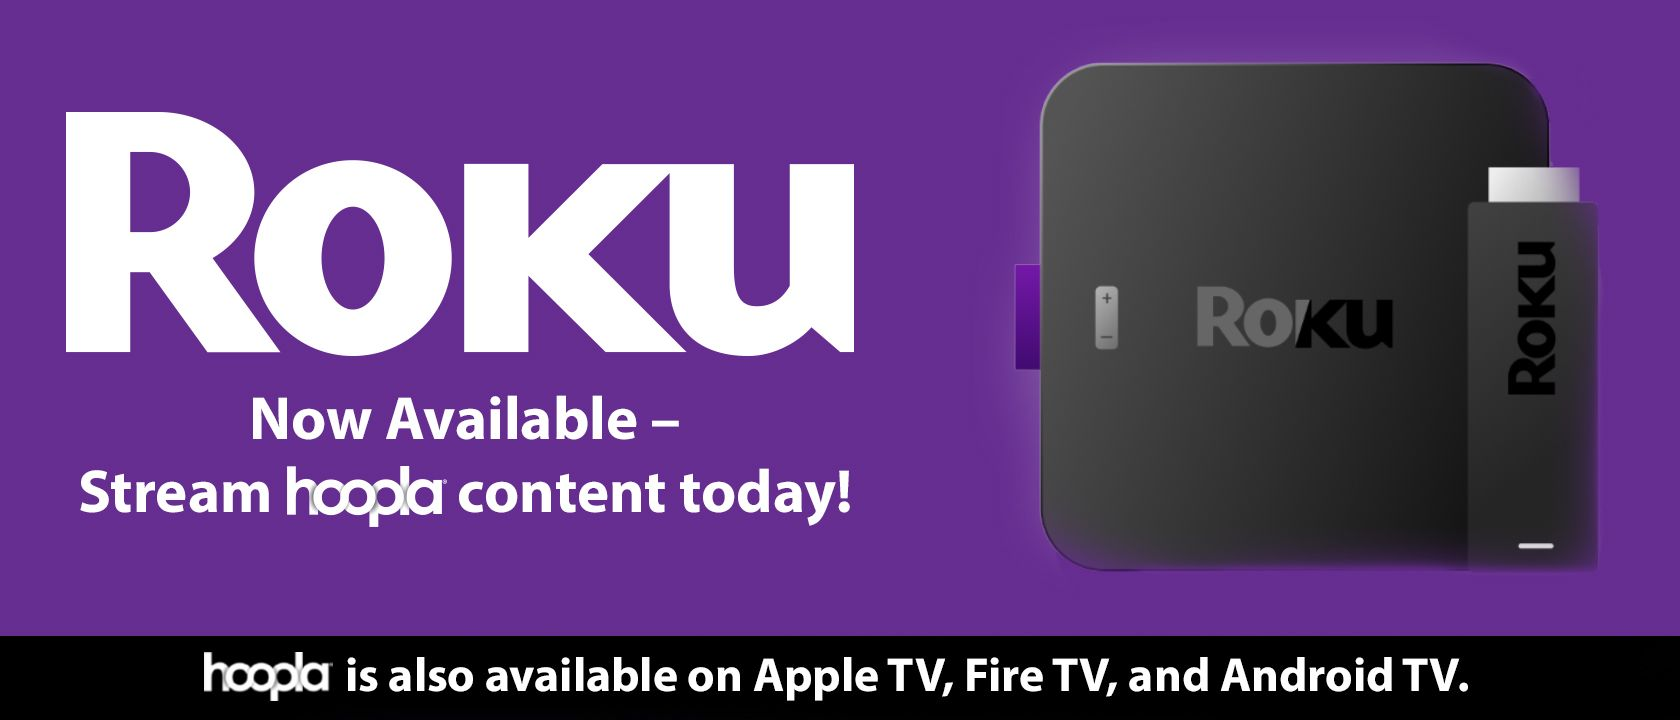 Hoopla is now available on Roku devices! Stream free